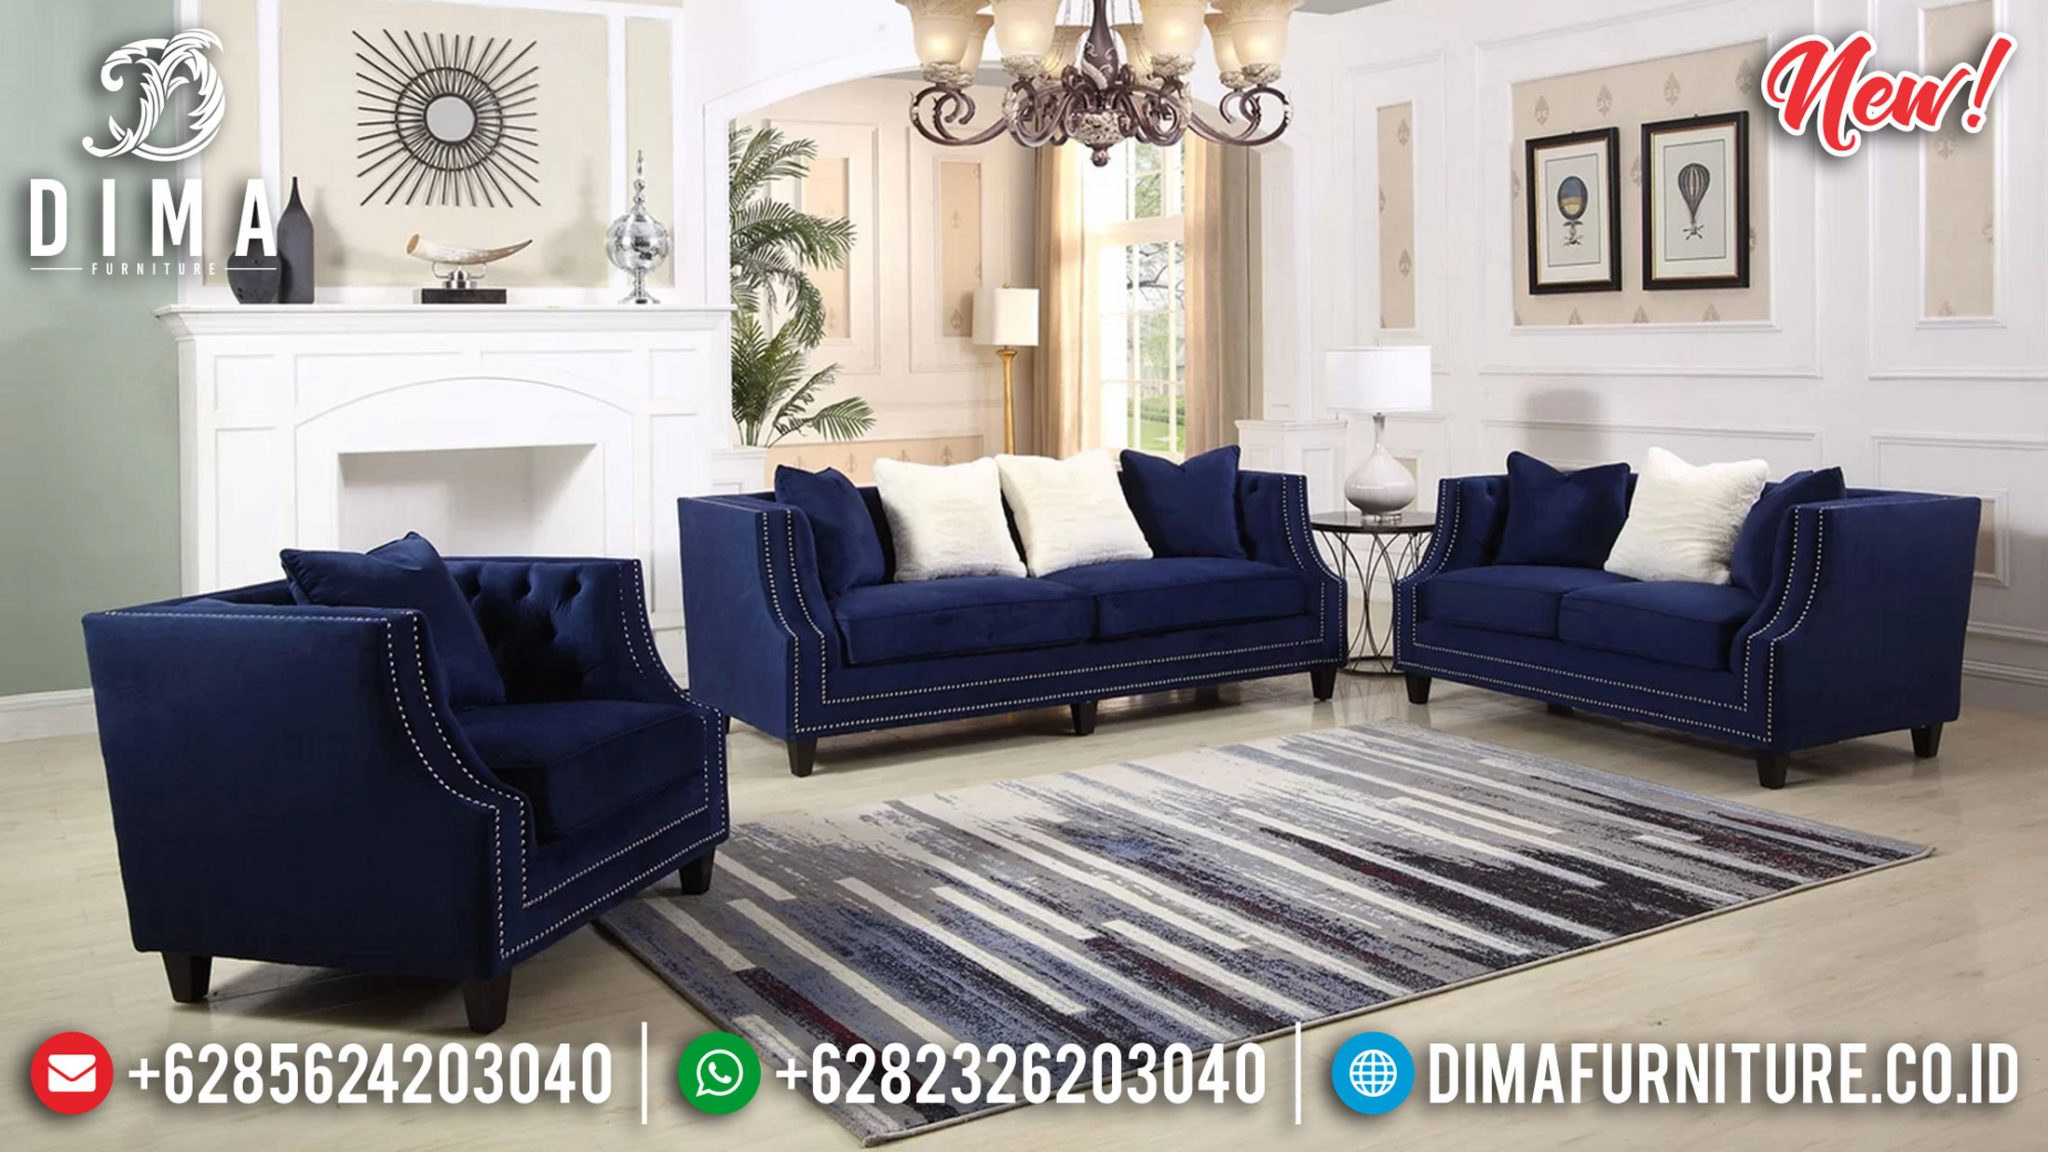 Sofa Tamu Minimalis Furniture Jepara Luxury Classic Design Interior Inspiring Ttj-1272